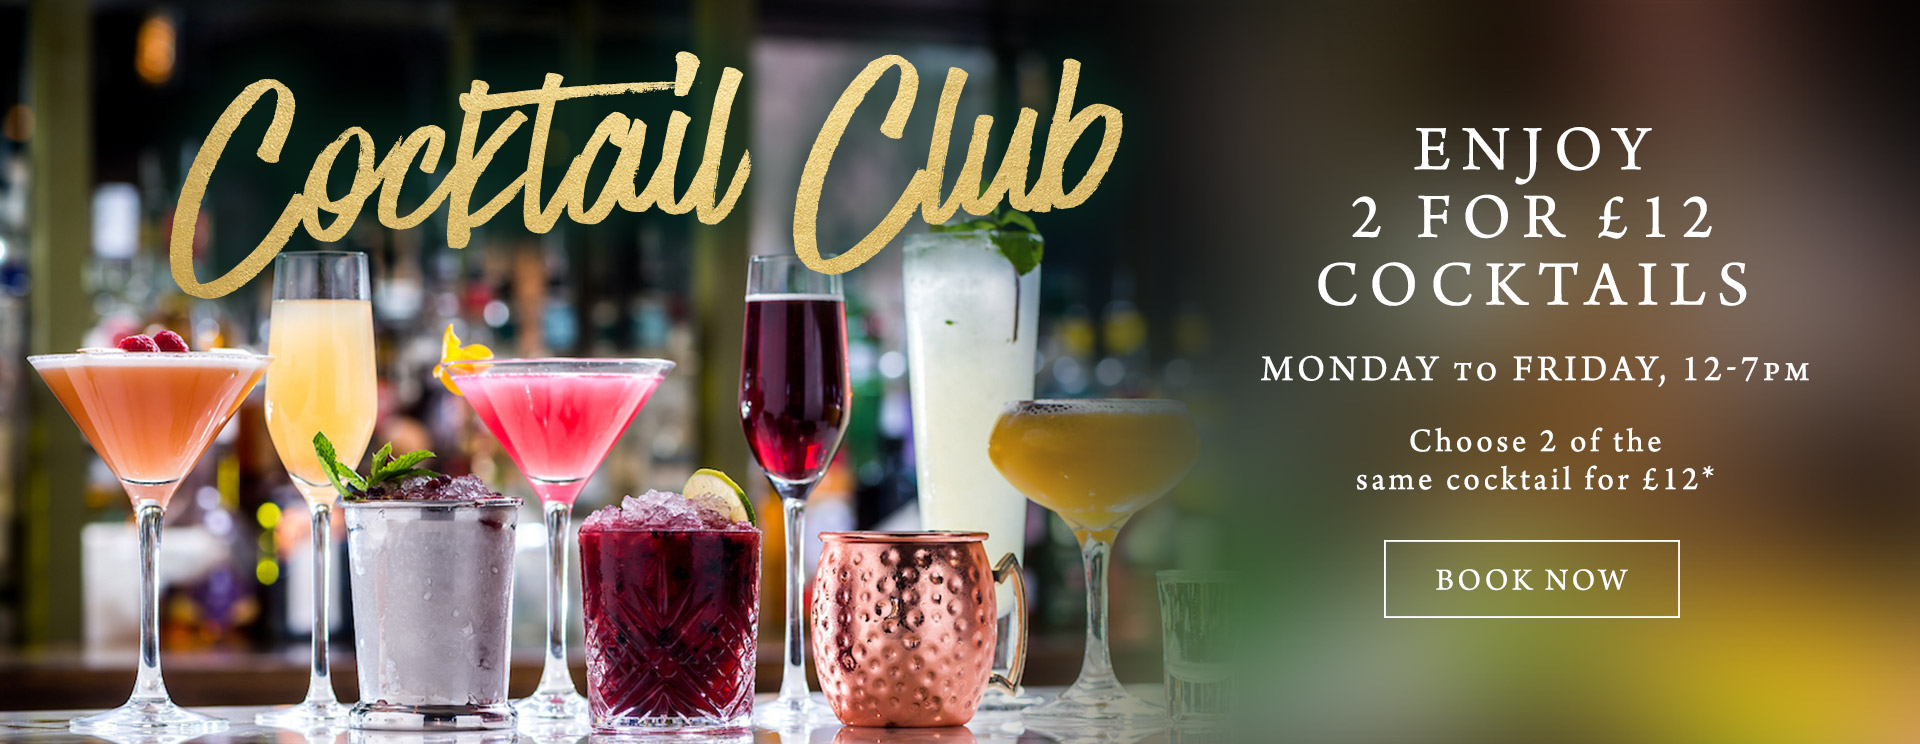 2 for £12 cocktails at The Bell